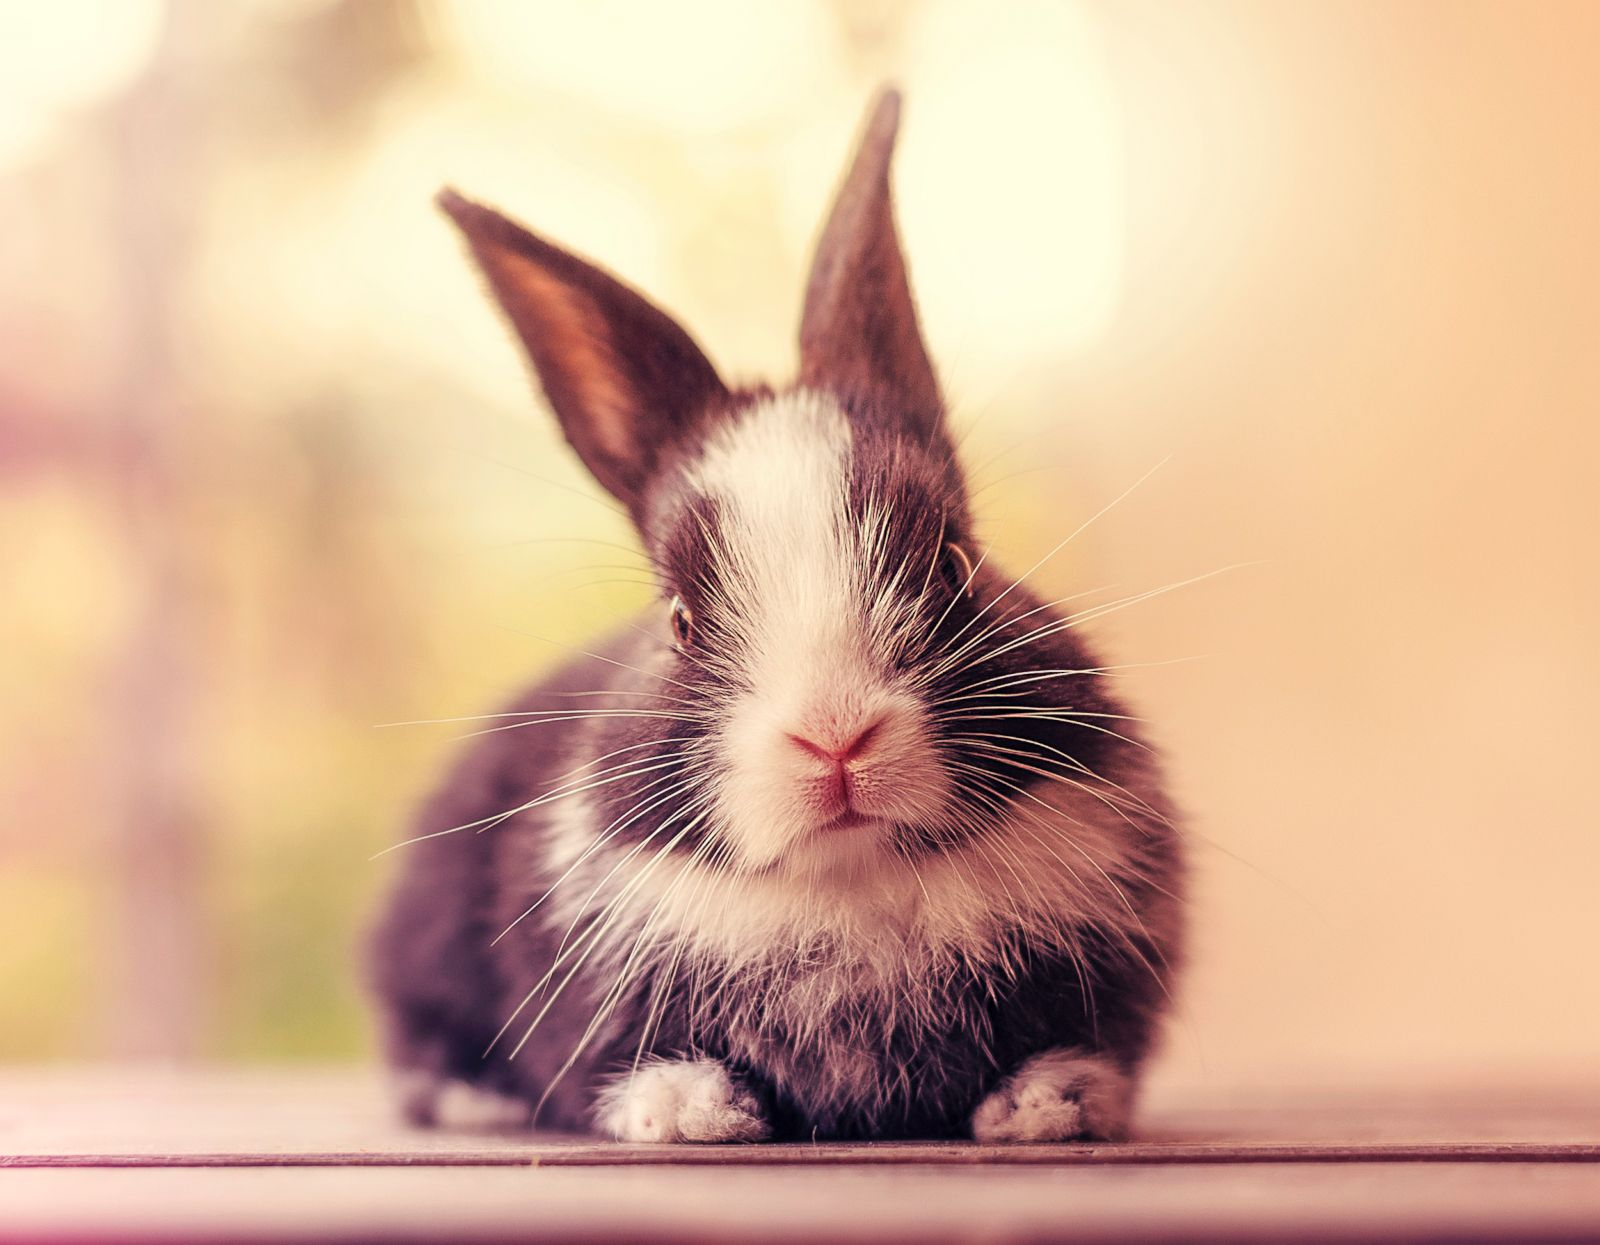 photographer documents growth of pet bunnies in adorable